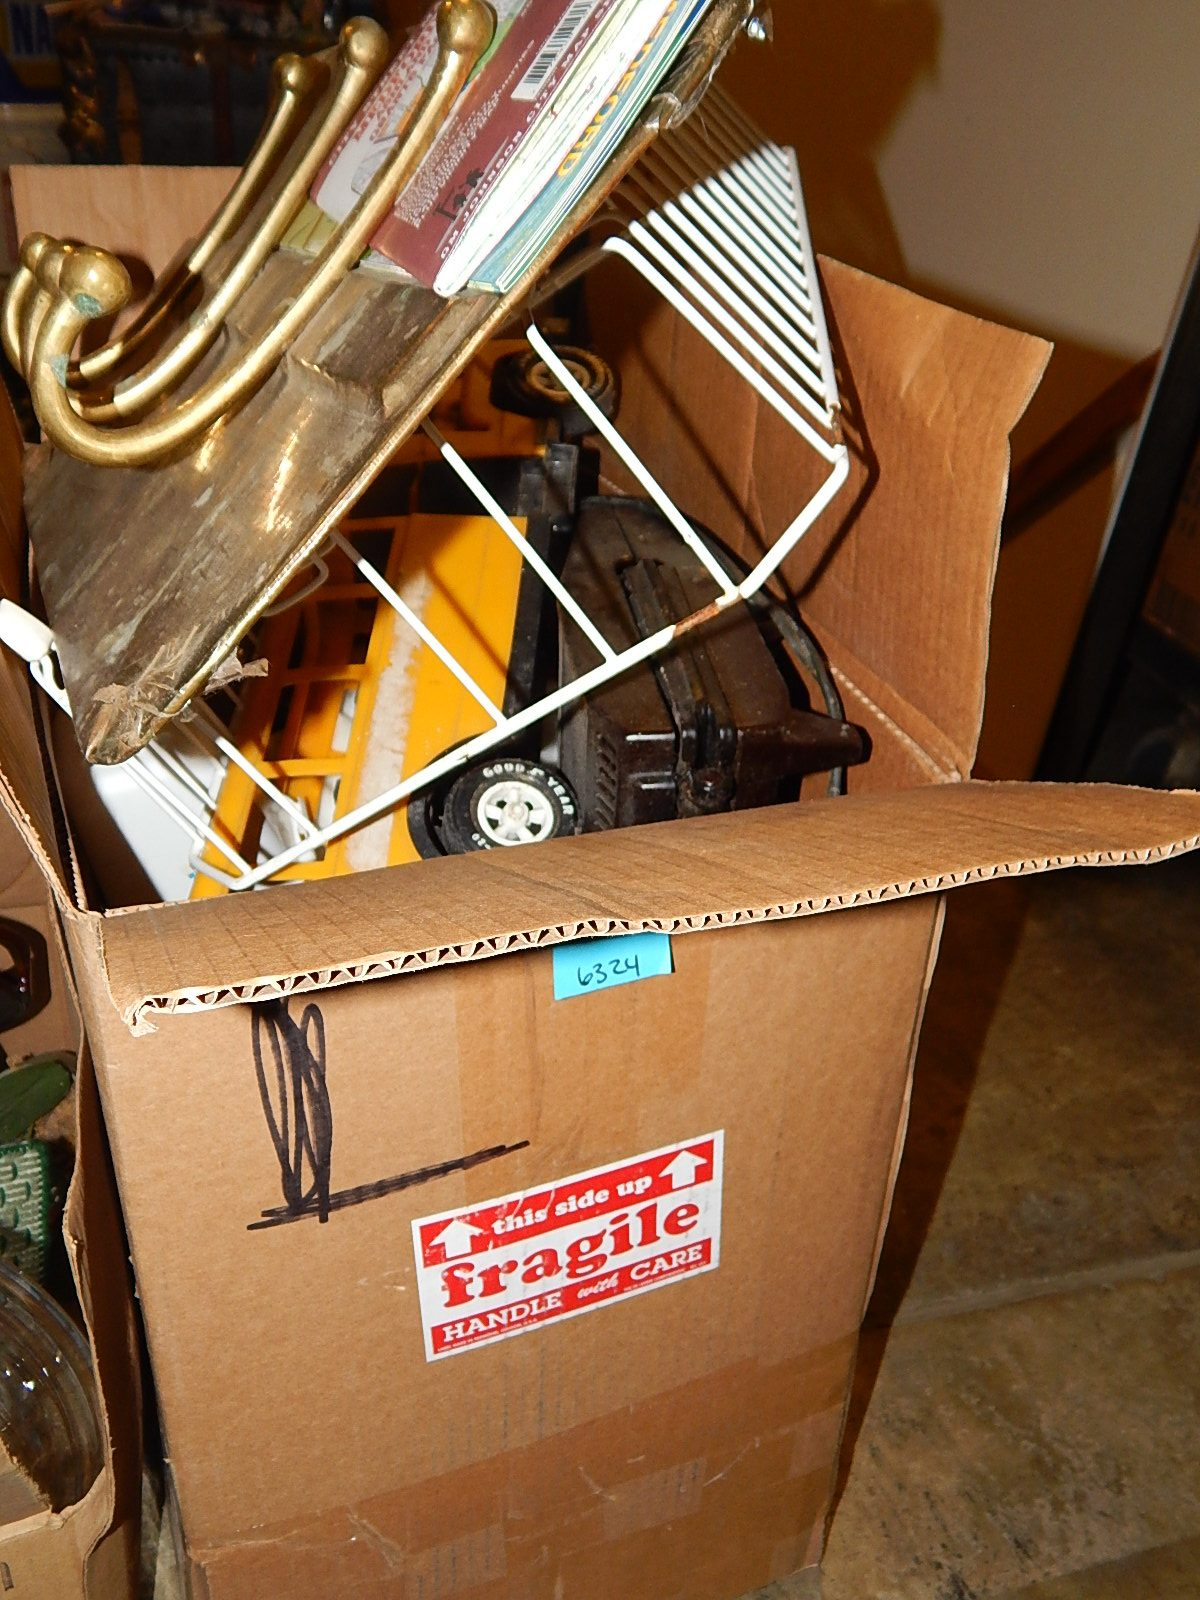 L6324- Box Full With School Bus, Towel Hook And More